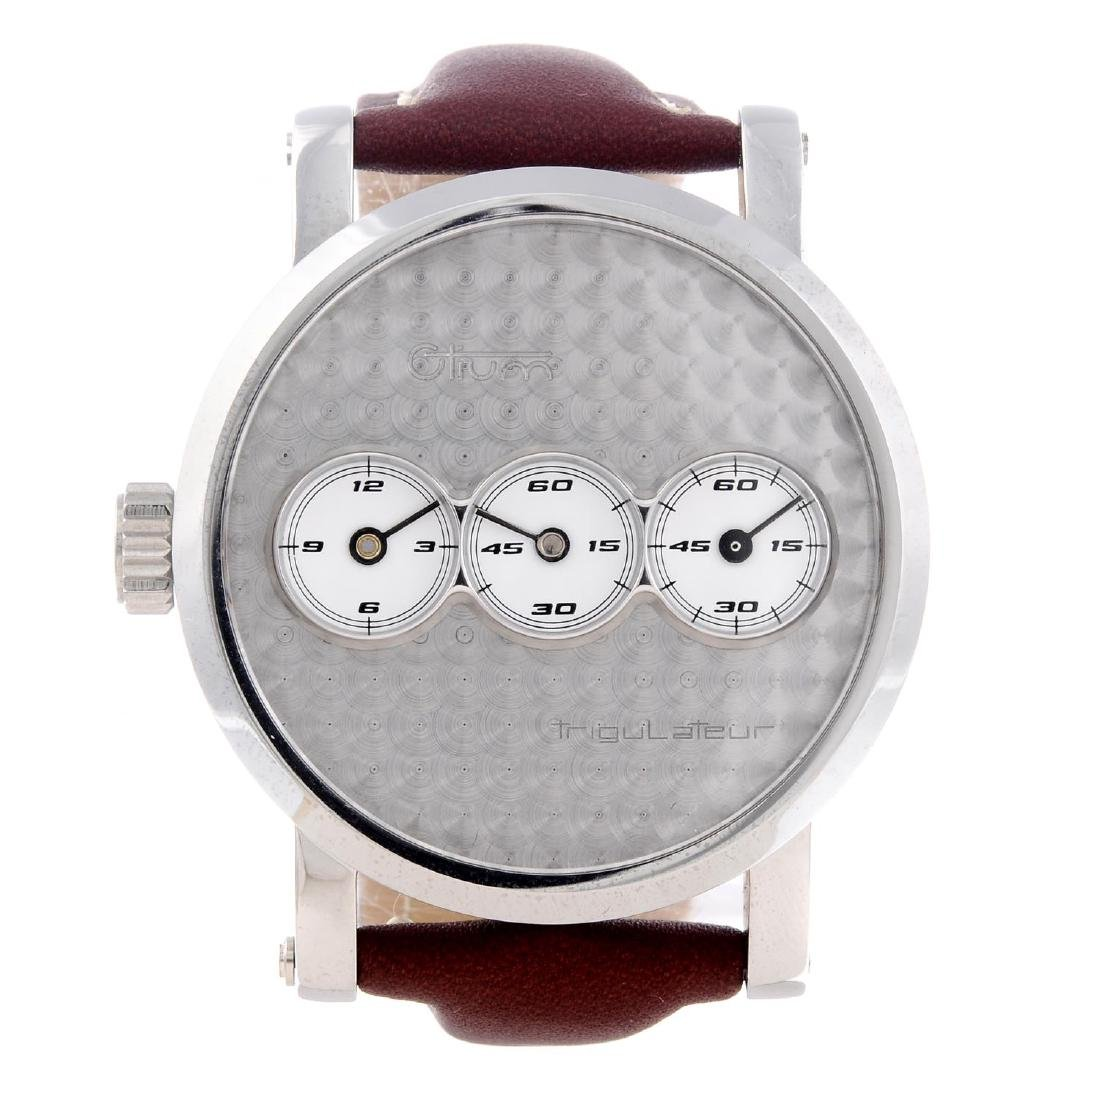 OTIUM - a gentleman's Trigulateur wrist watch.